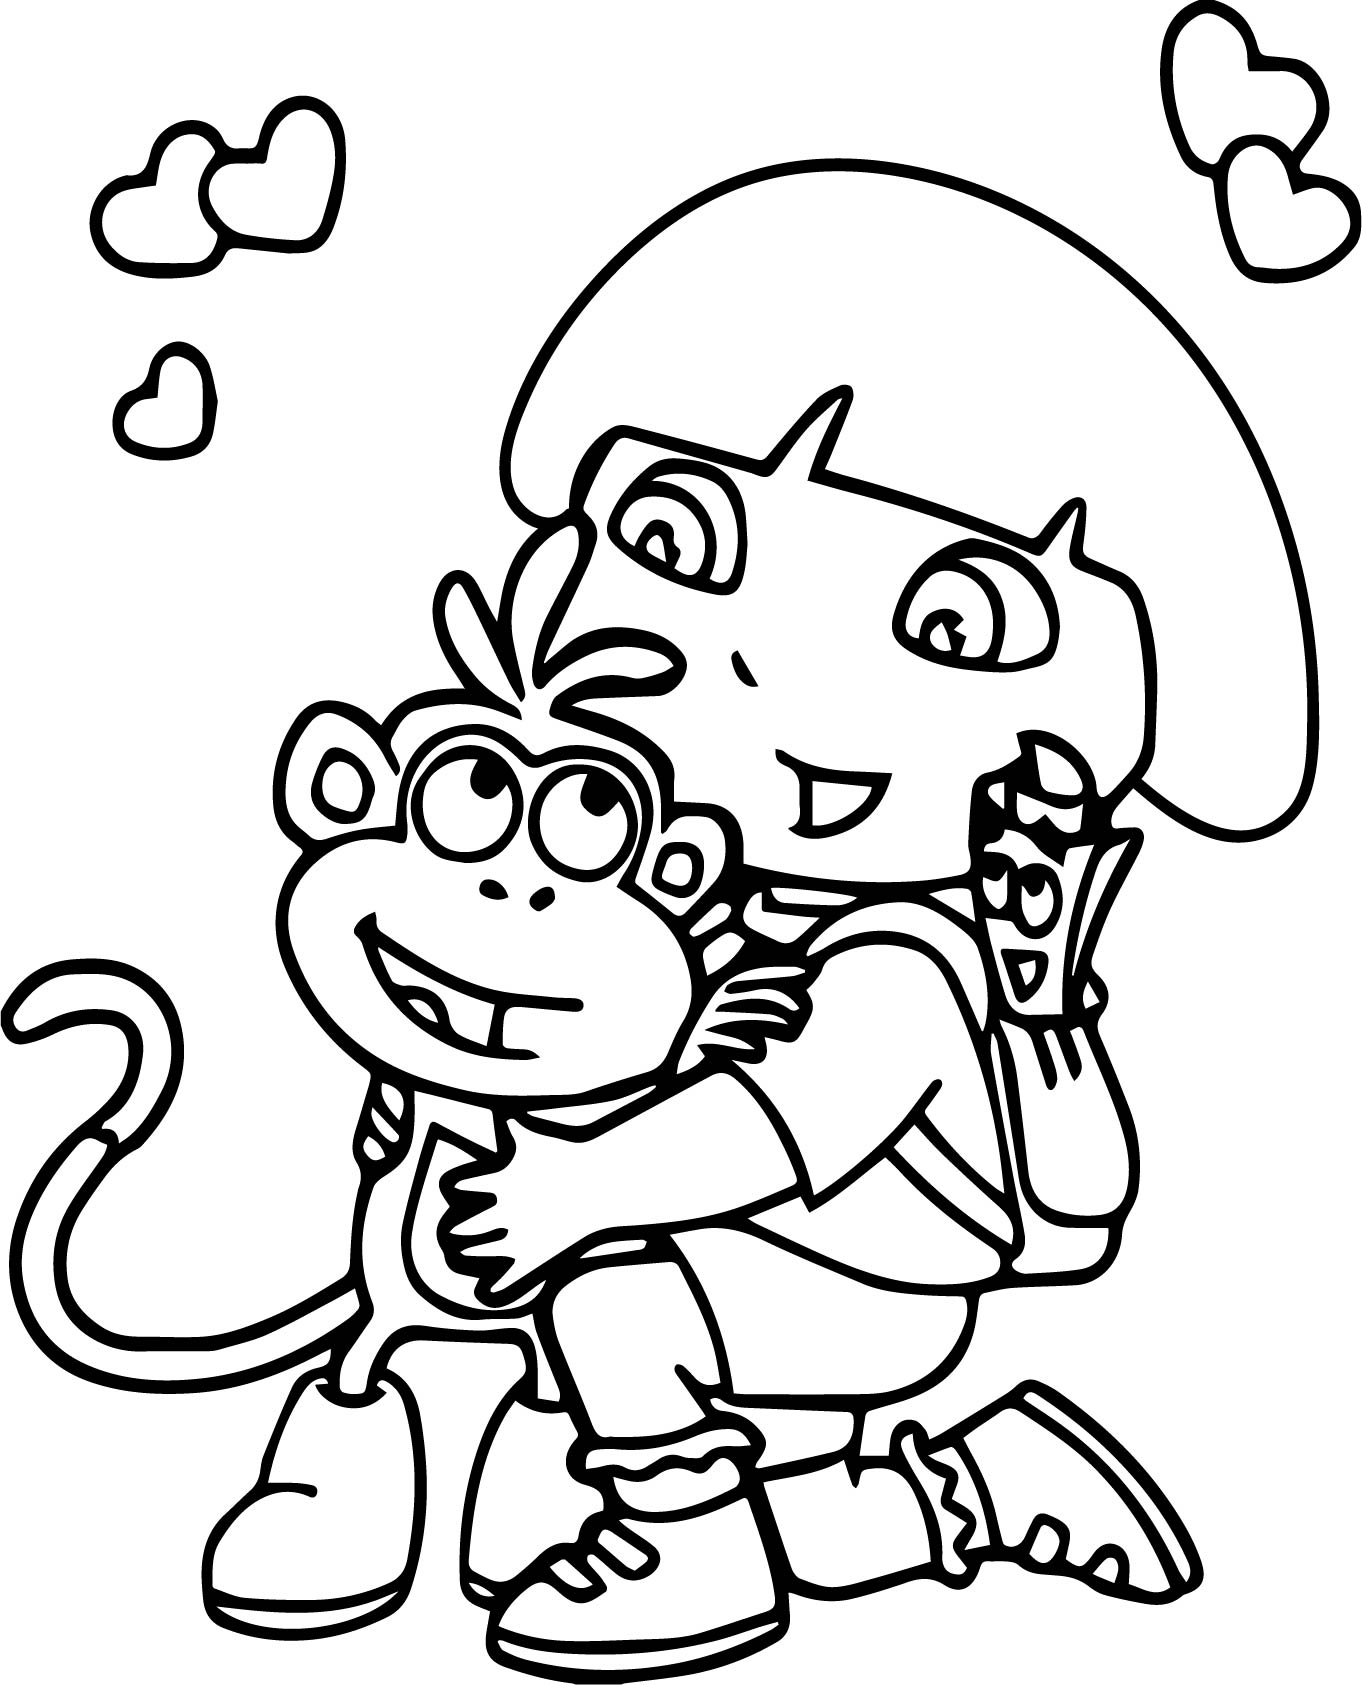 Dora The Explorer And Boots Coloring Page